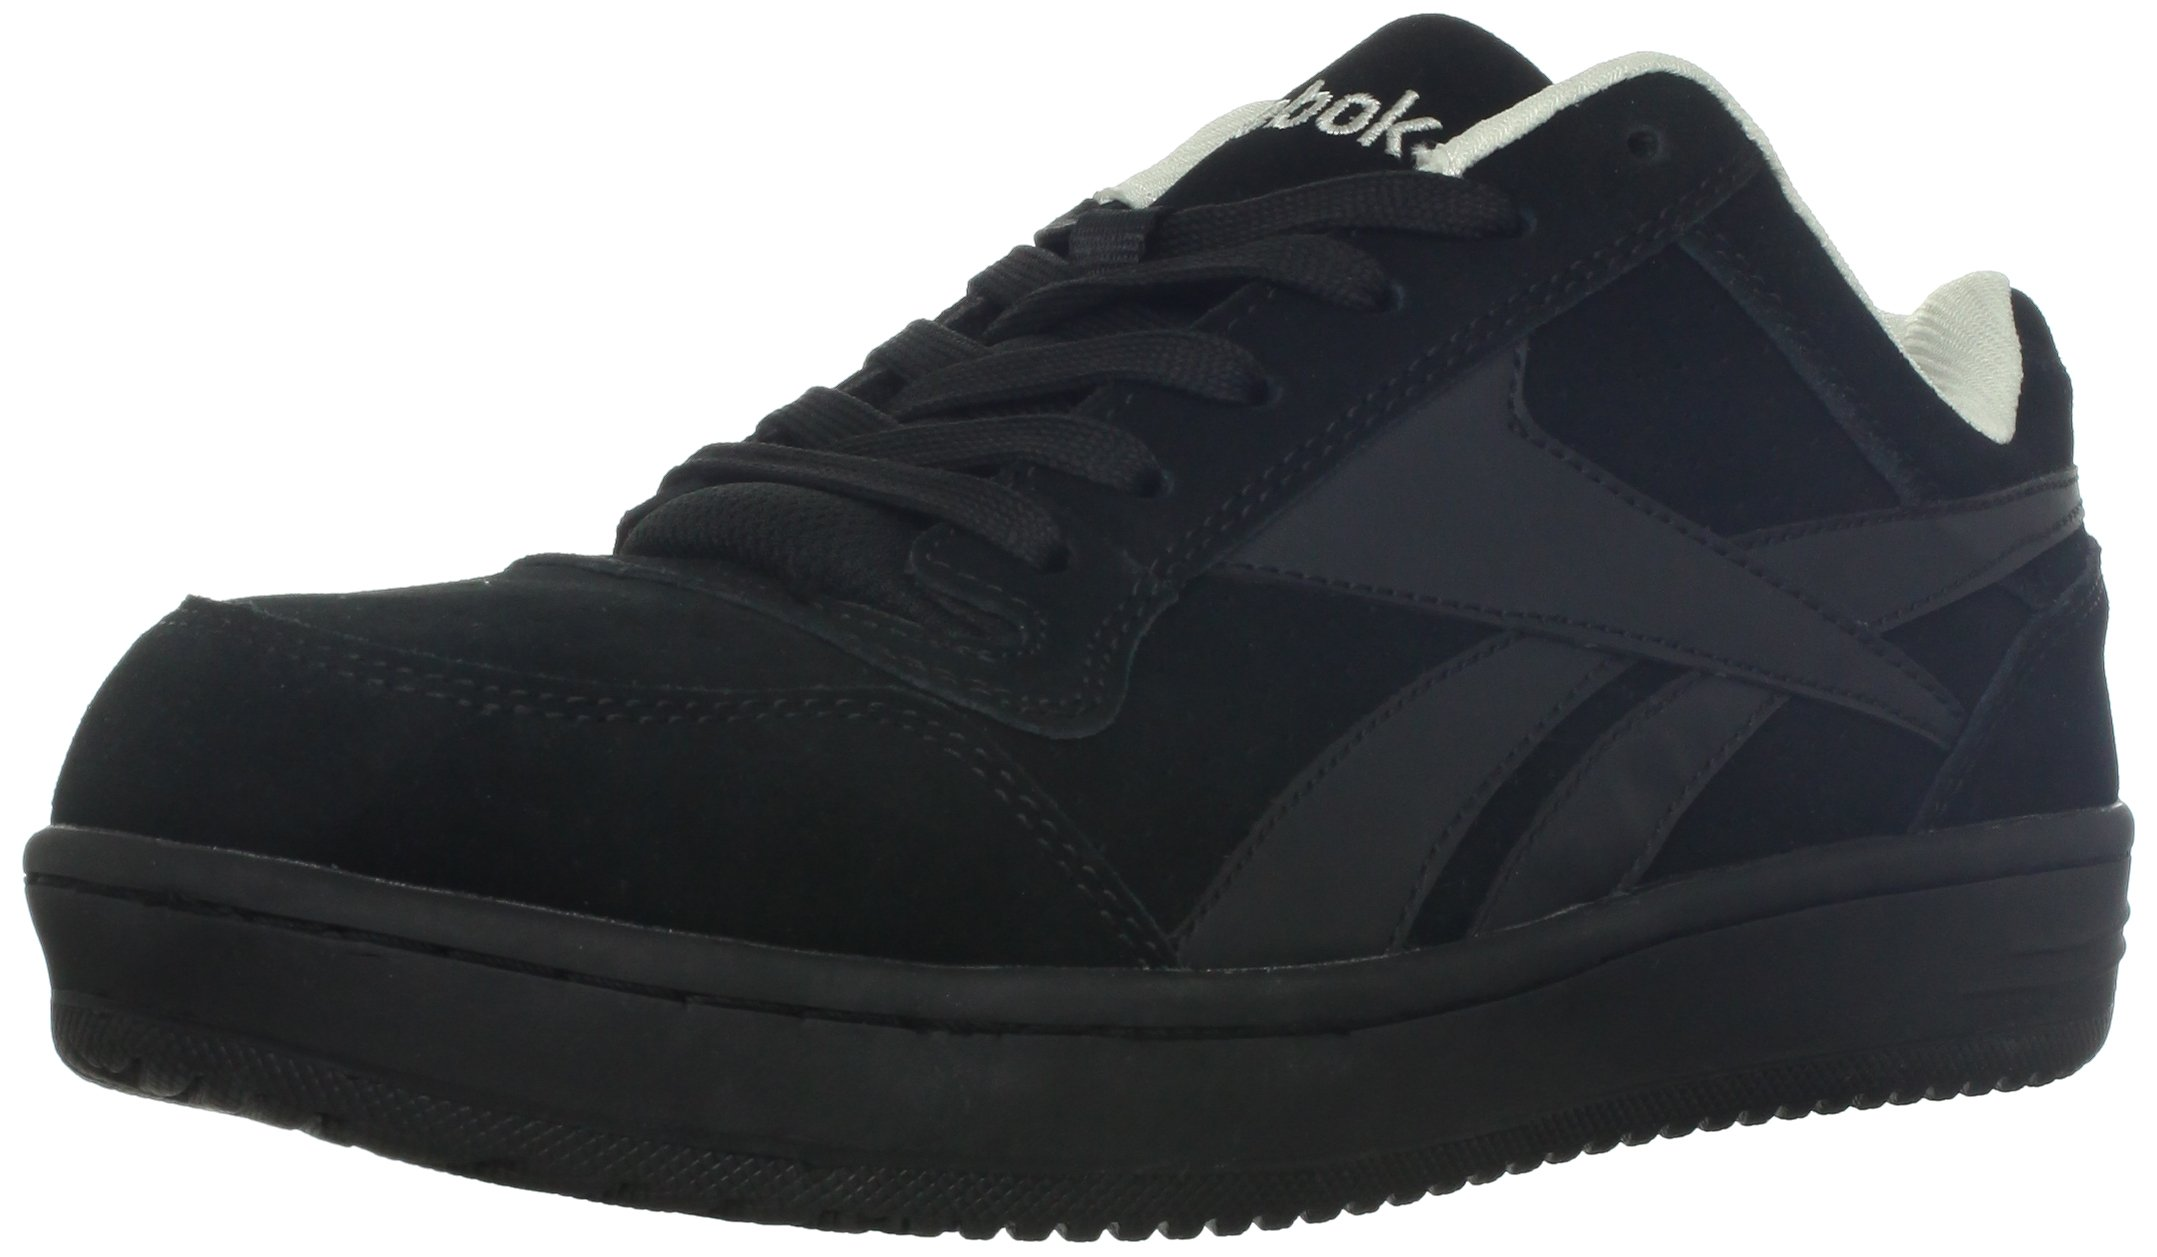 Reebok Work Men's Soyay RB1910 Safety Shoe,Black Oxford,13 W US by Reebok Work